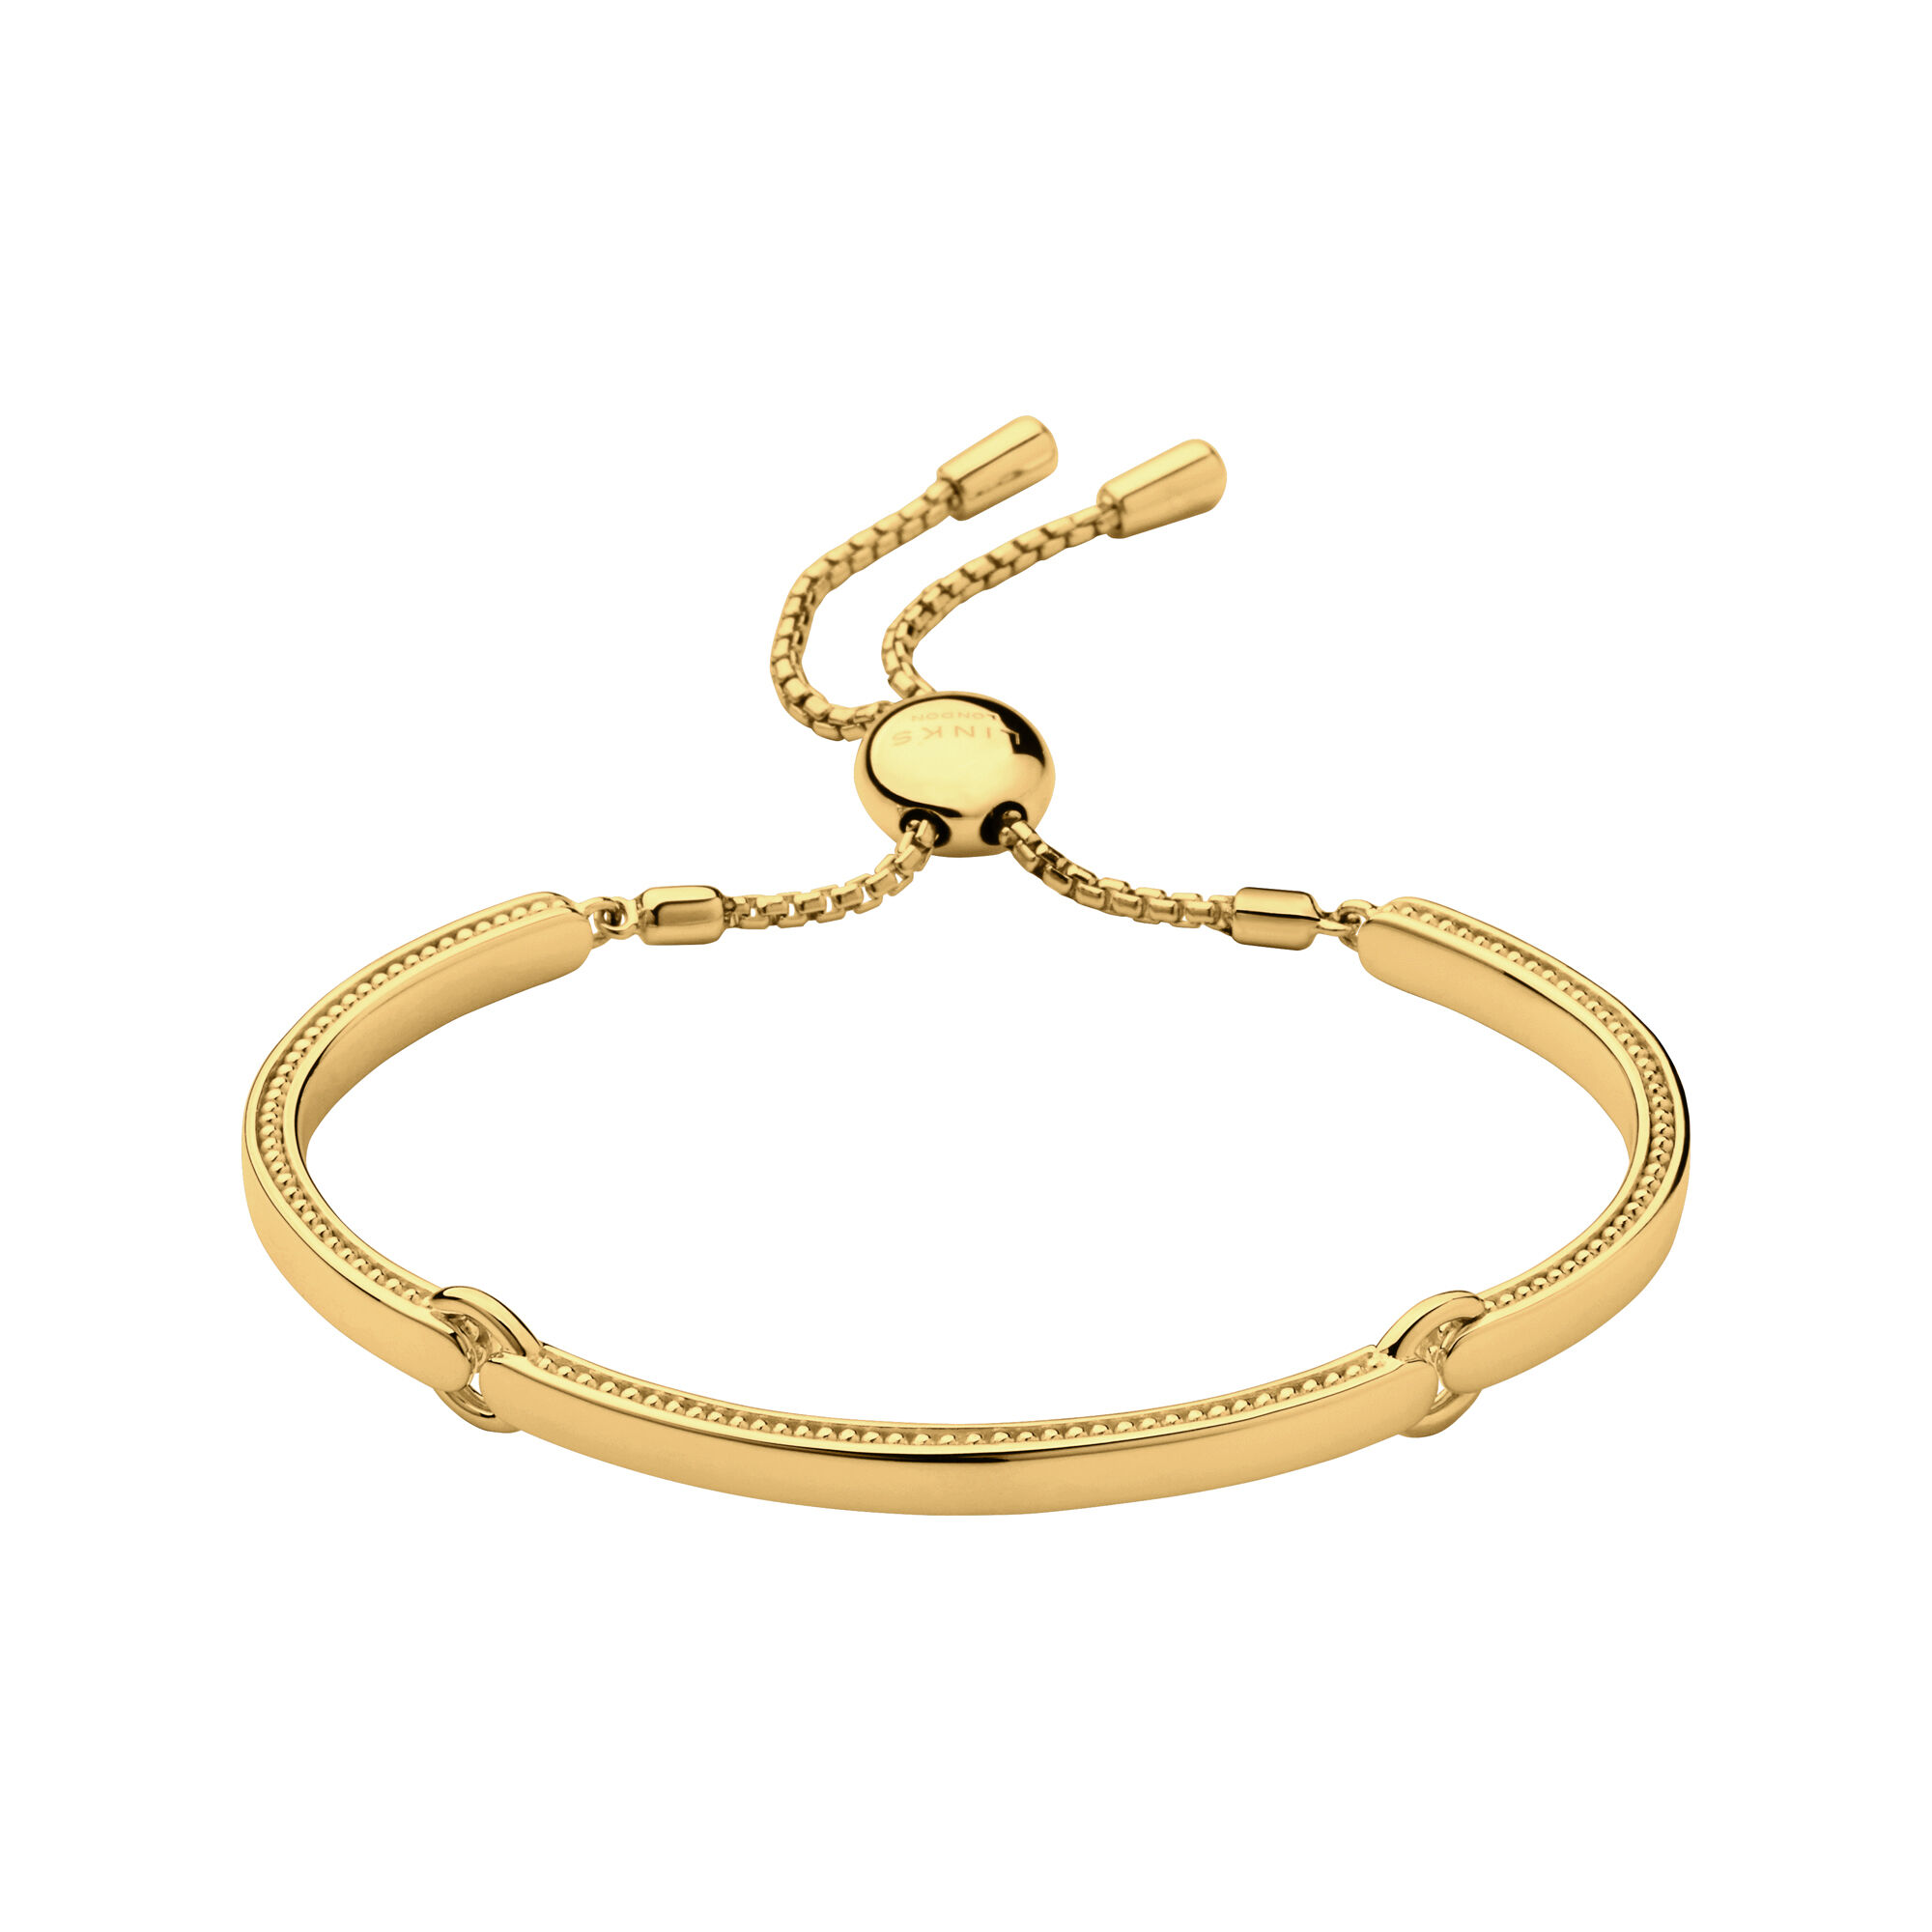 diamondland bangle bangles rose bracelets white diamond bracelet in gold womens